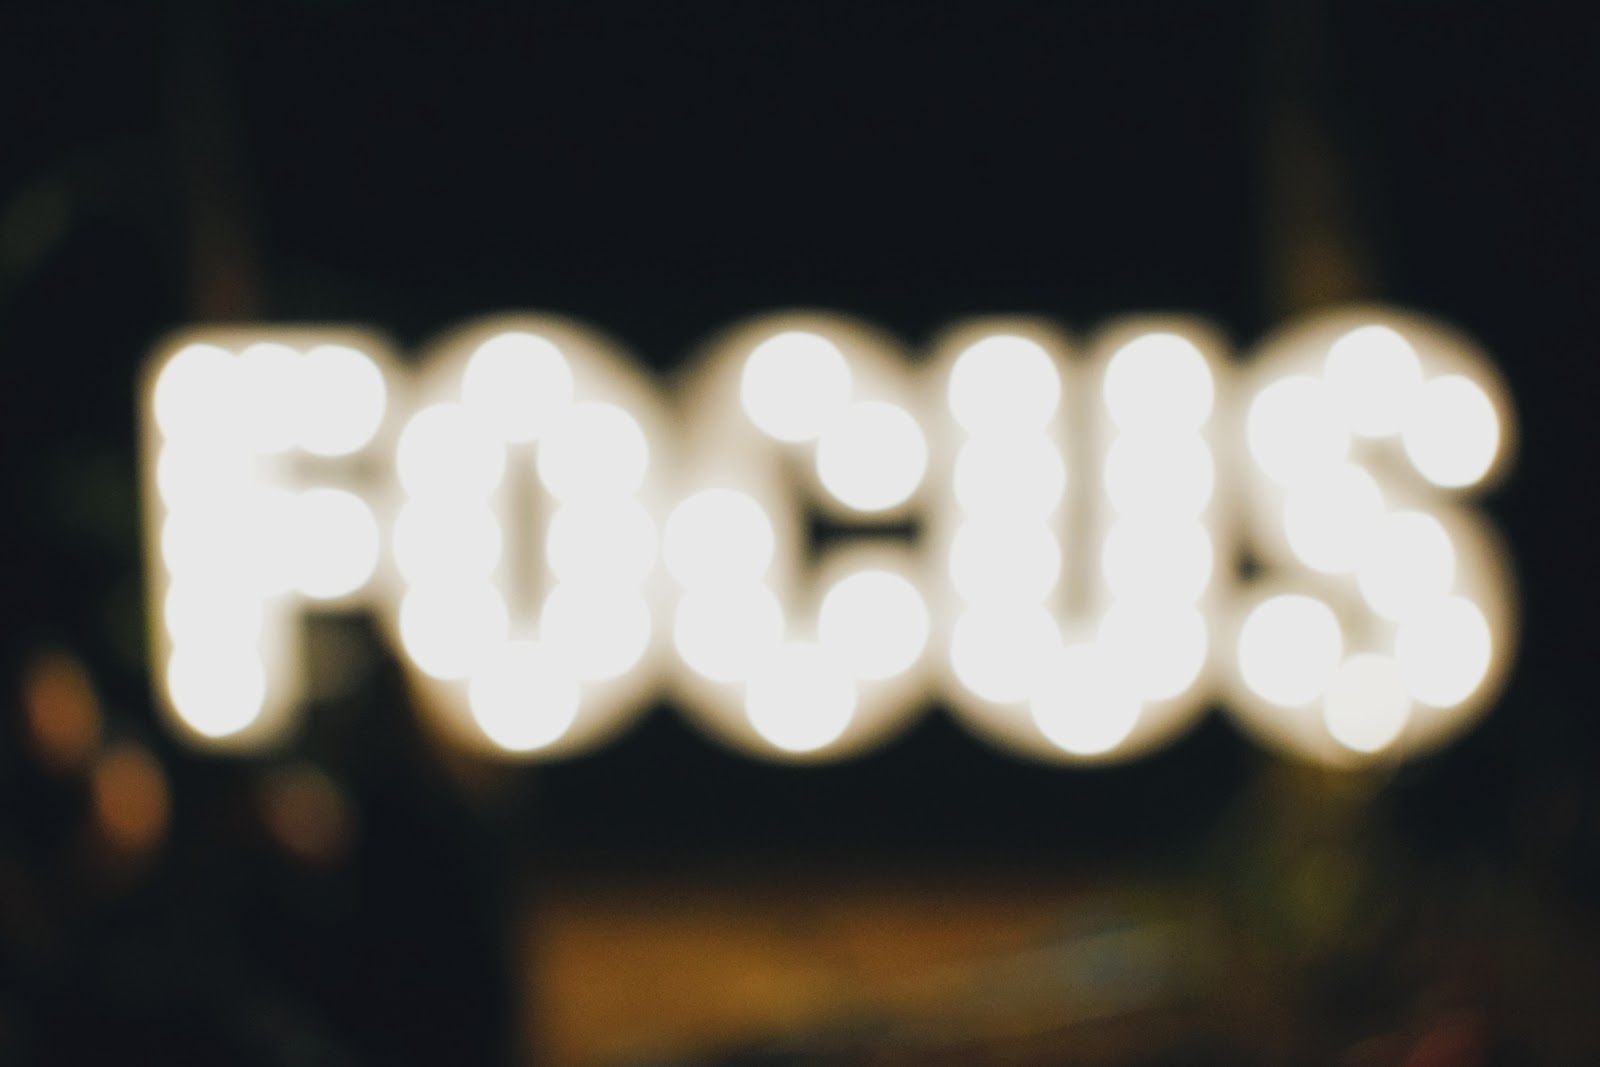 11 tips on how to stay focused in a hectic world